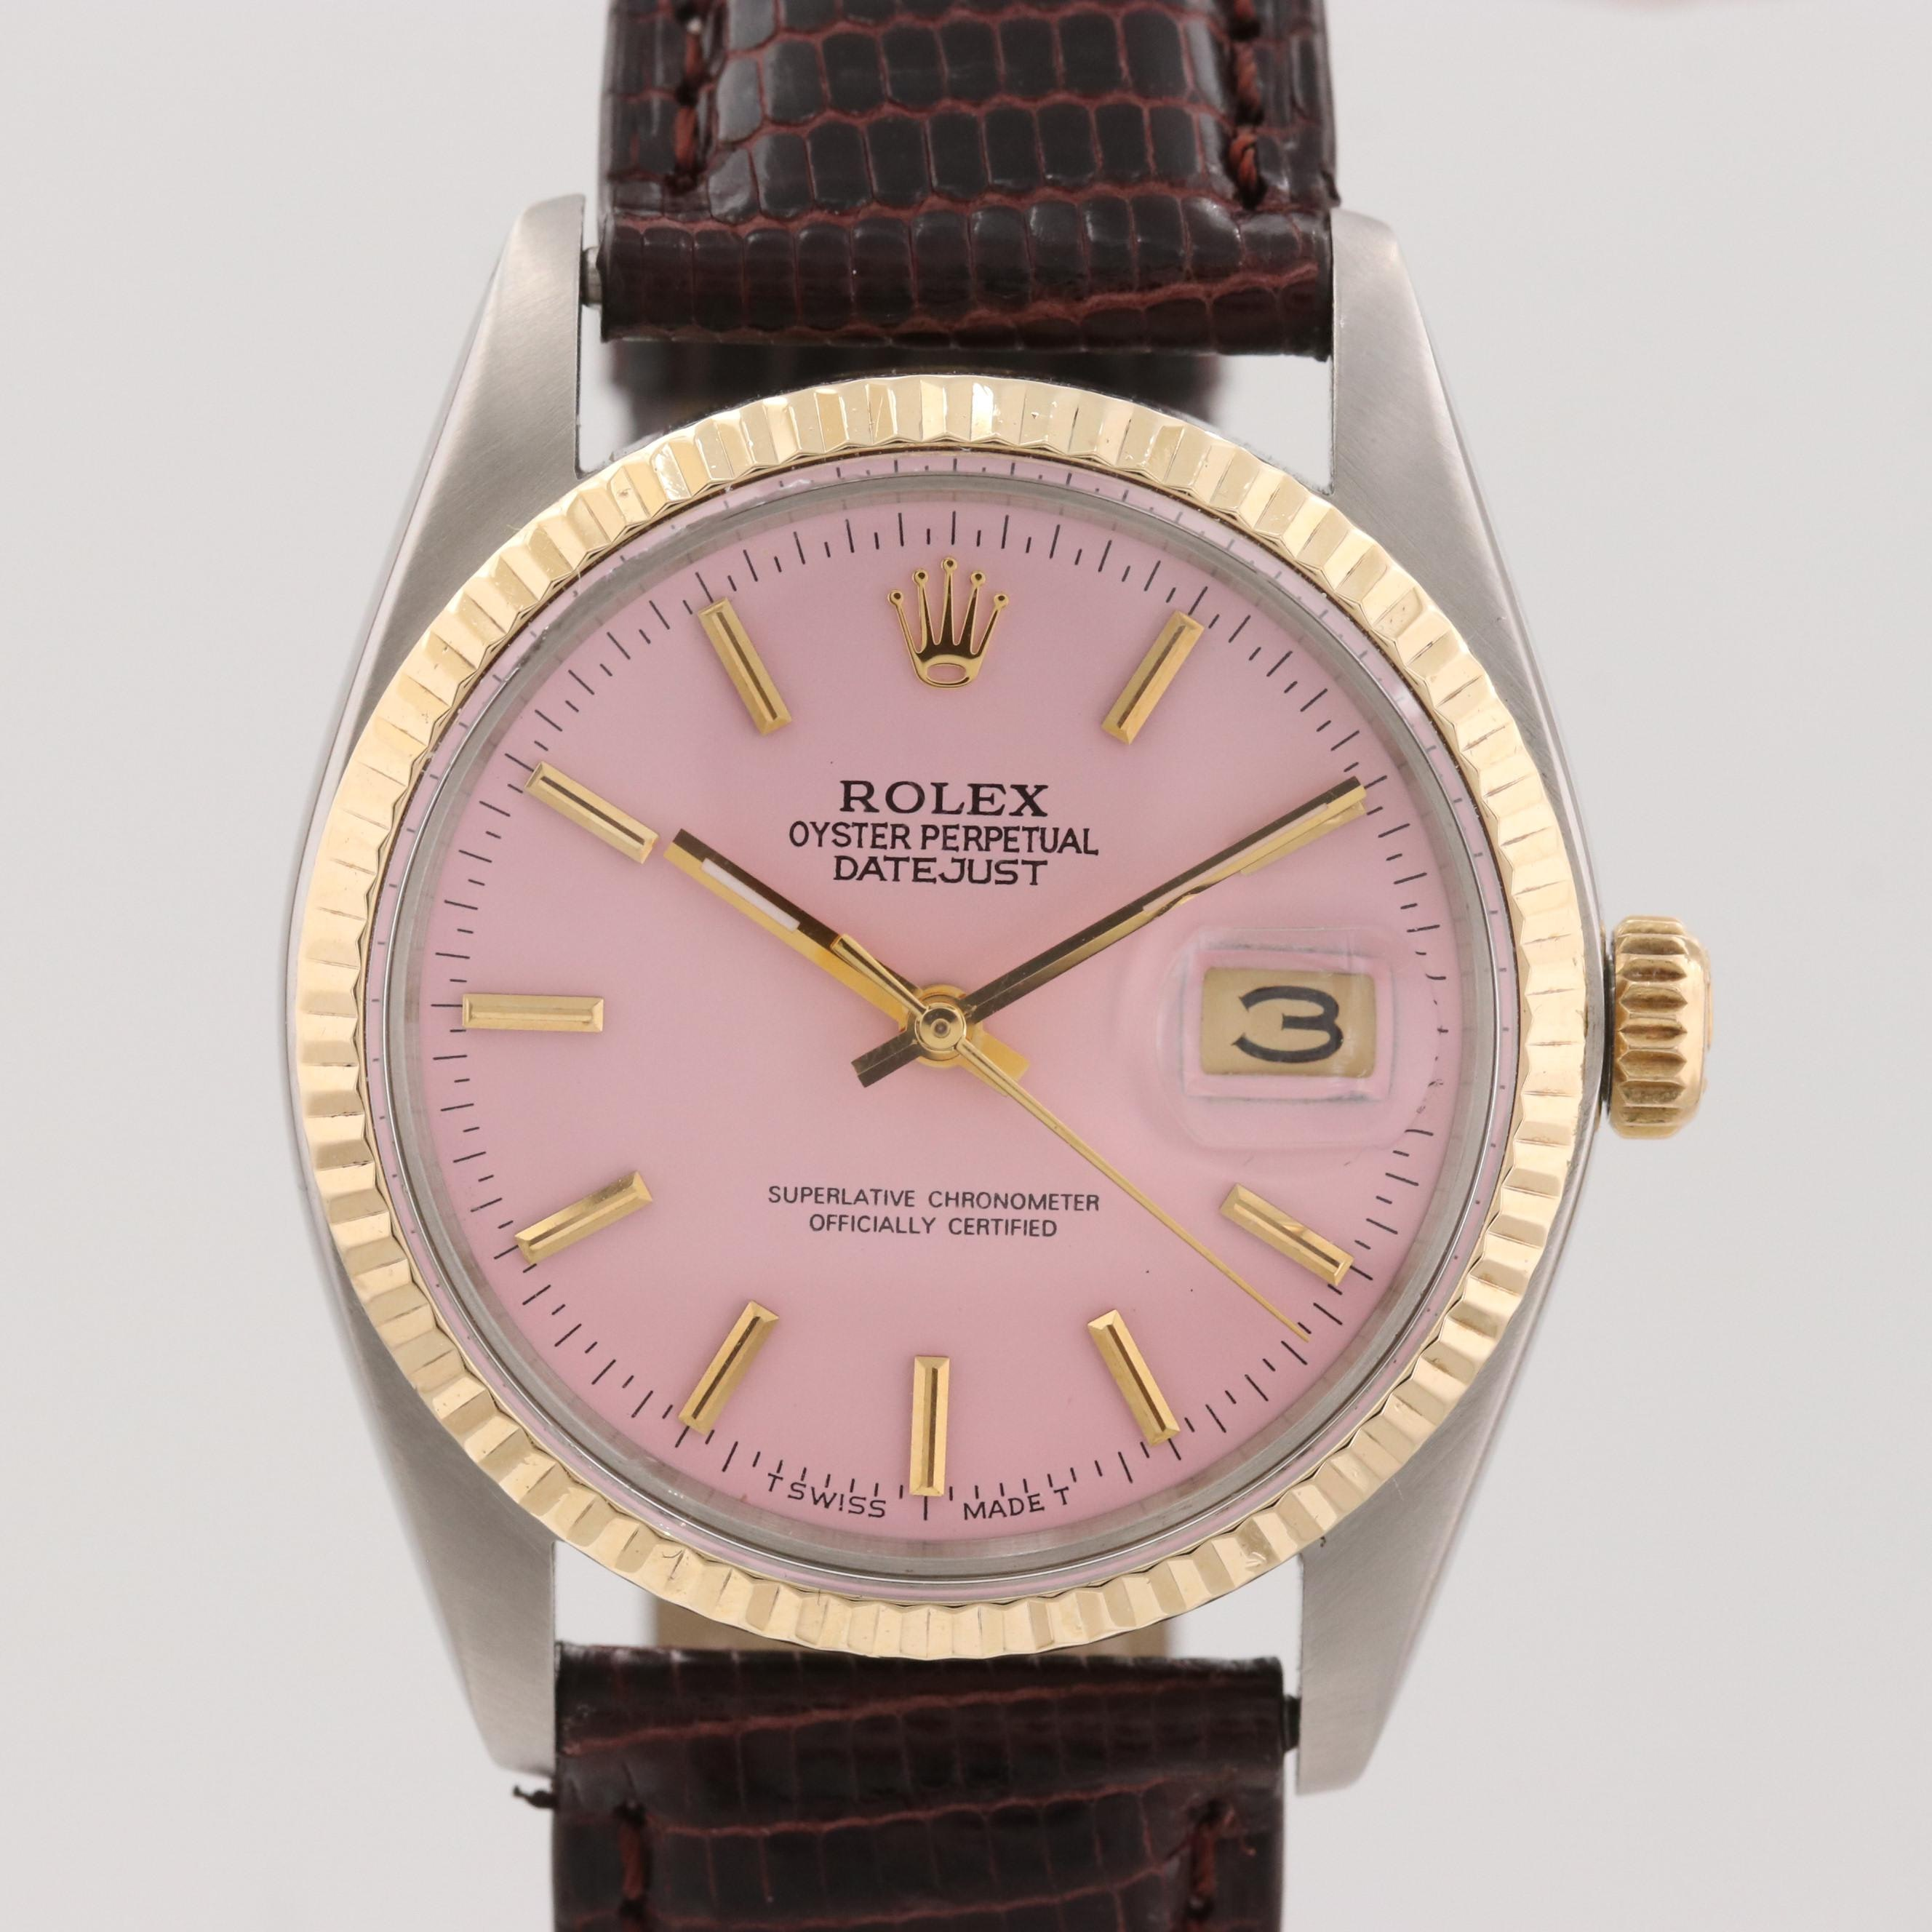 Vintage Rolex Datejust Two Tone Stainless Steel and 18K Gold Wristwatch, 1979